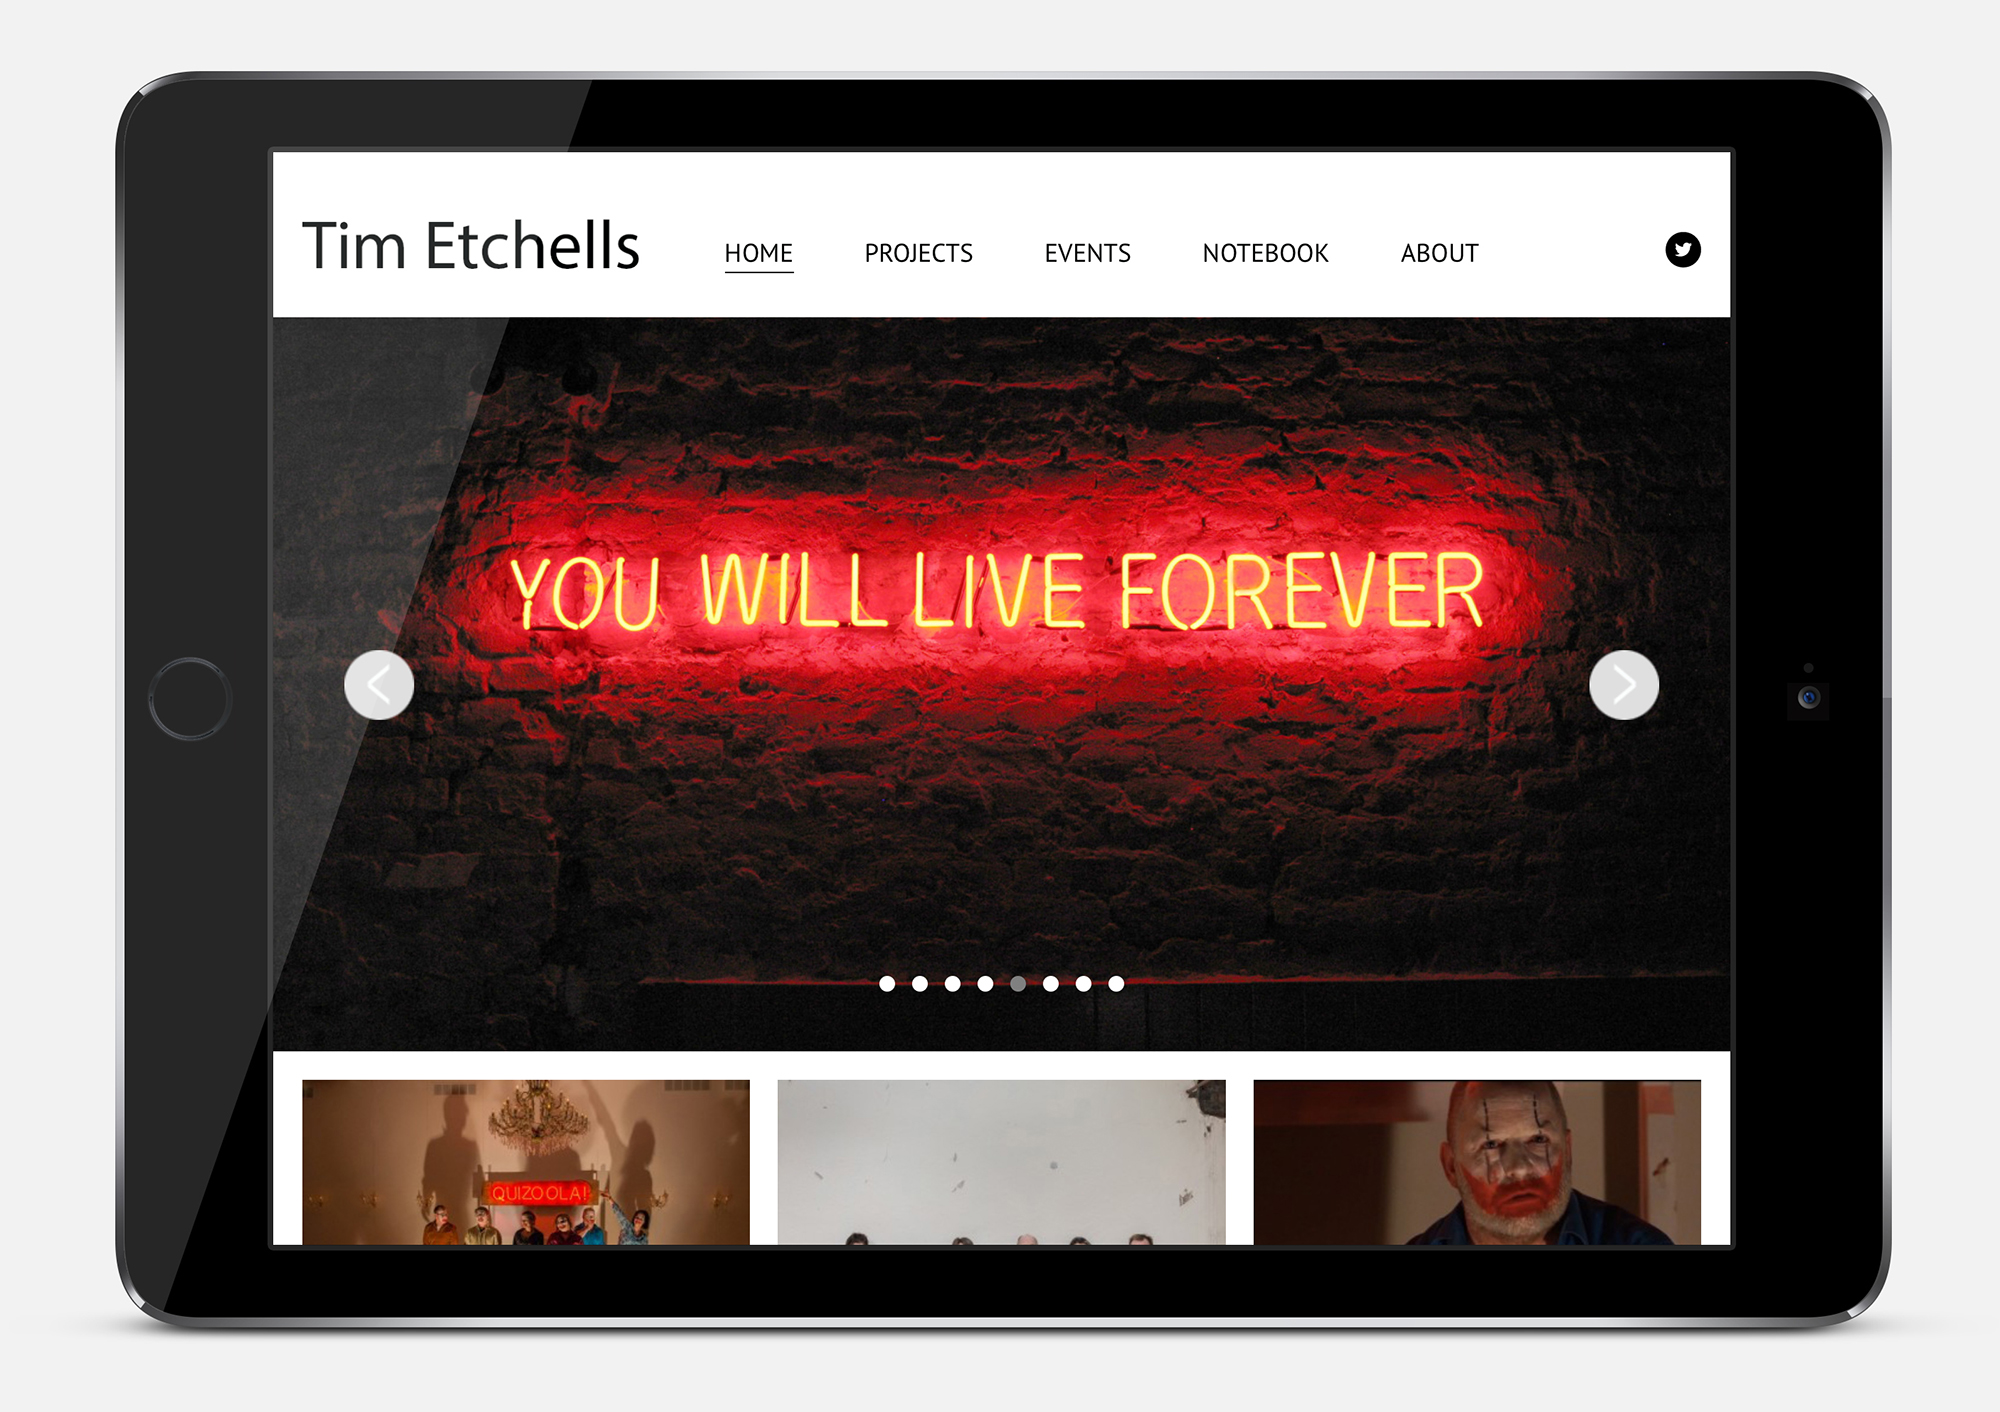 Tim-Etchells-ipad-single